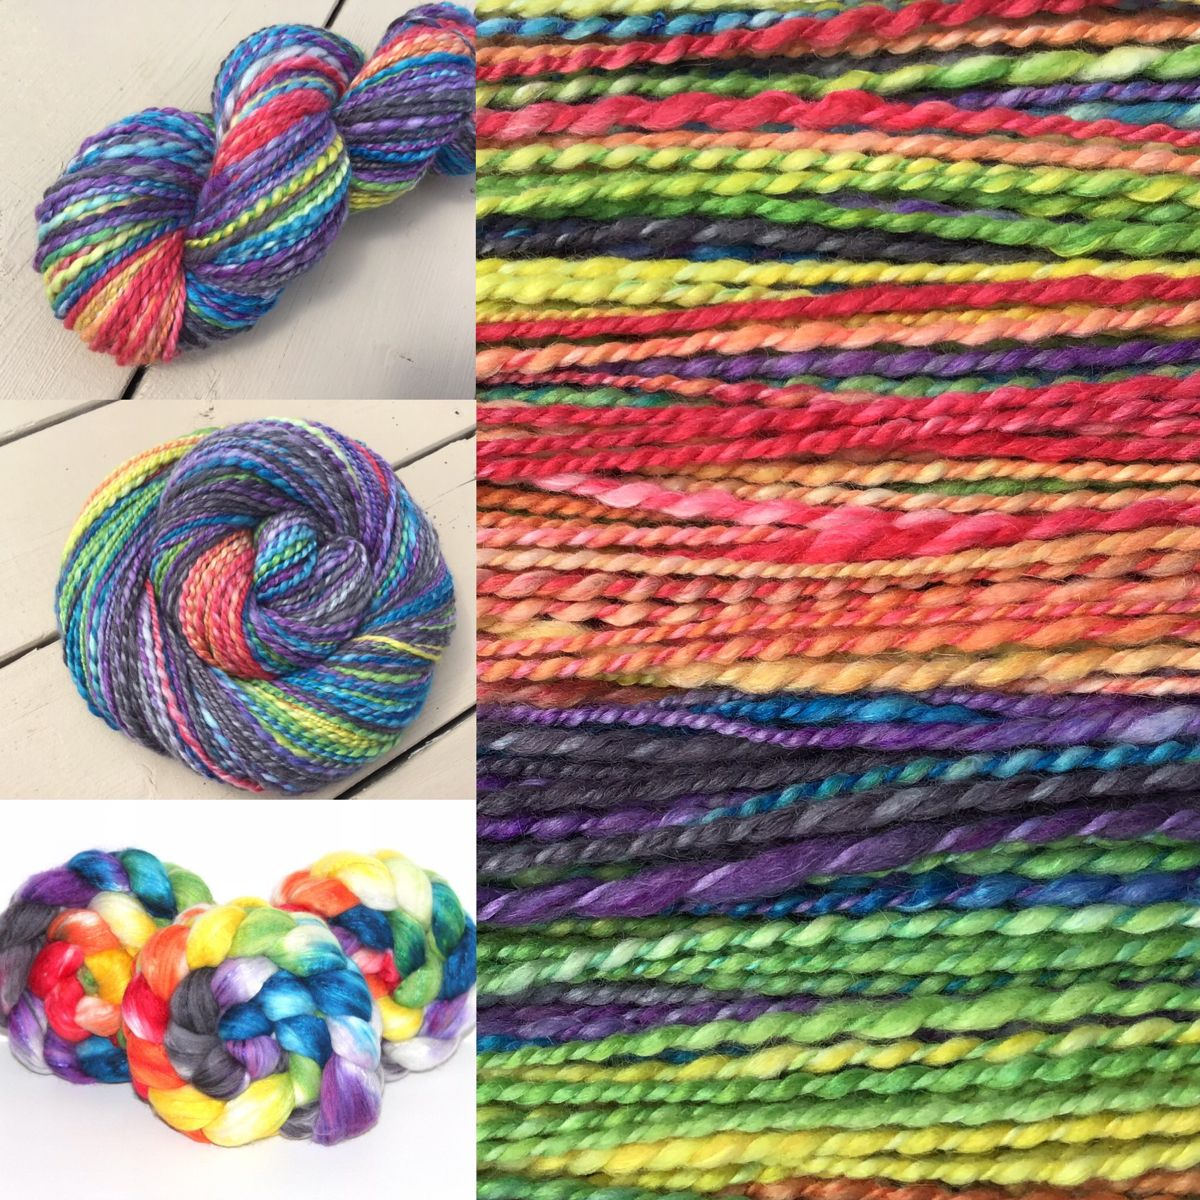 The gorgeous yarn was spun from our Rainbow Brite colourway on our Merino / Cashmere / Silk roving.  It makes a super soft yarn that you can work up into something beautiful or just snuggle for a while!    #thefiberimp #handspunyarn #cashmereyarn #rainbow #rainbow yarn